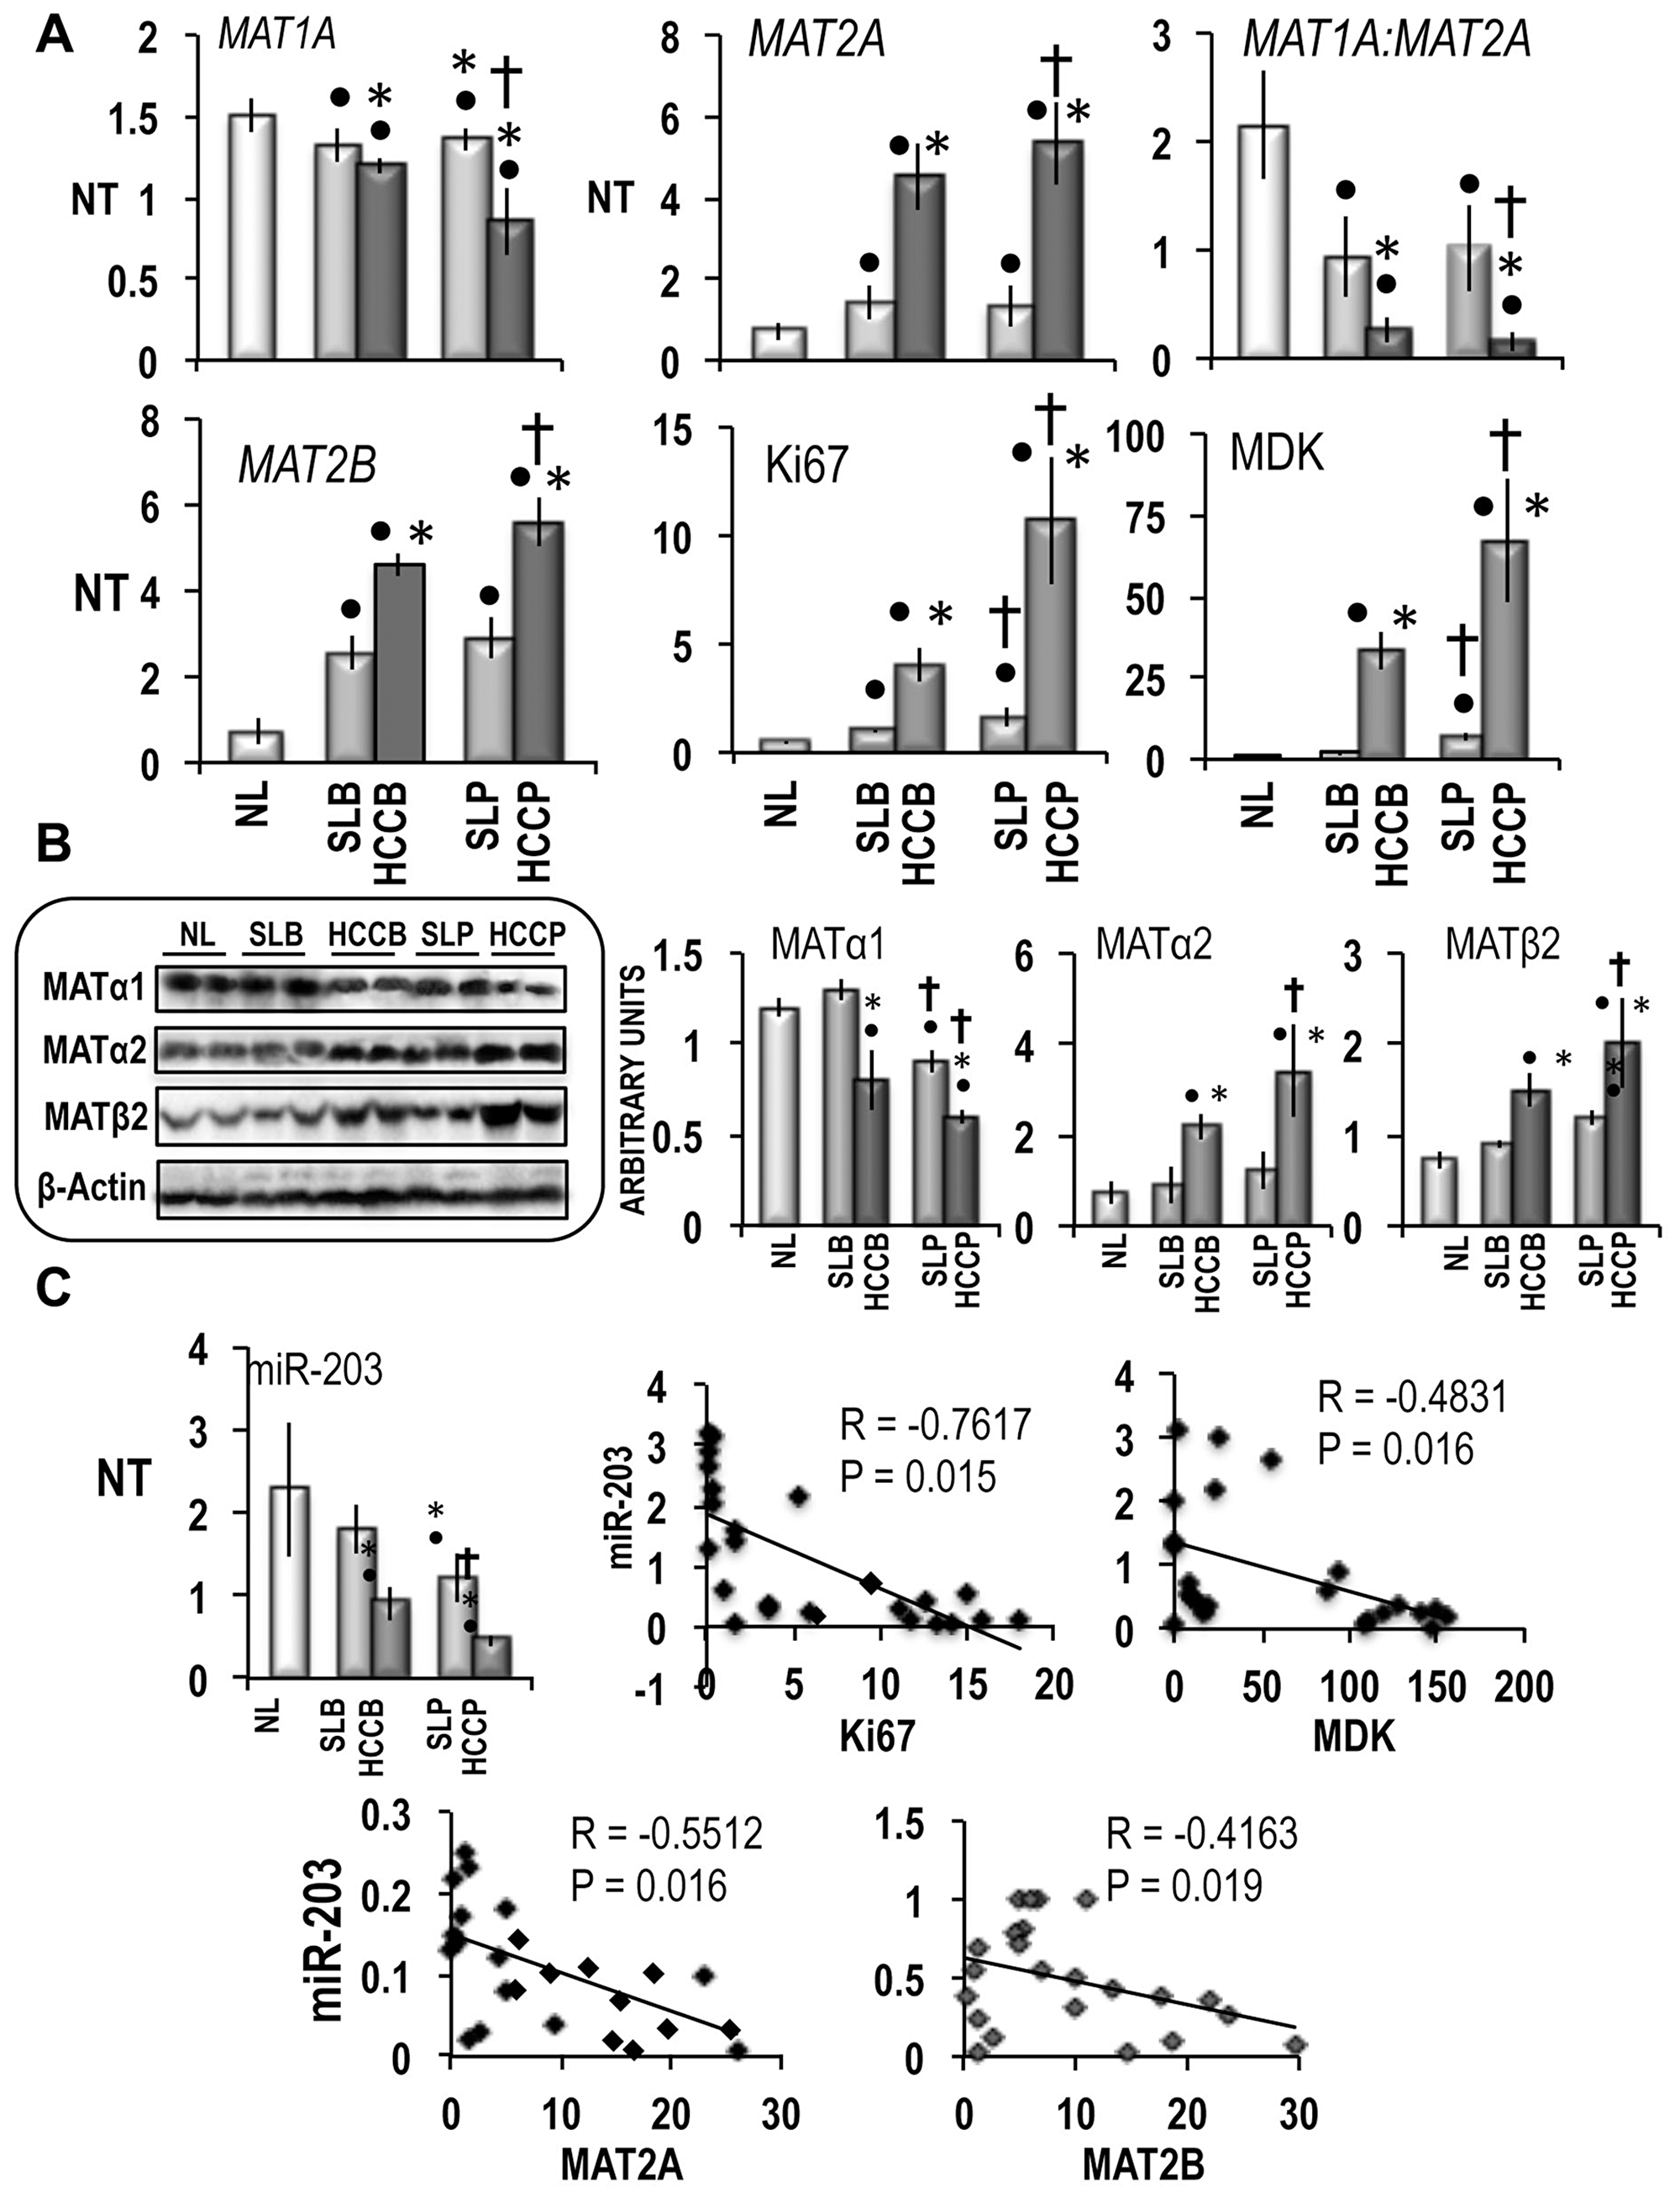 MAT1A, MAT2A, MAT2B and miR-203 expression in human HCC with different prognosis.